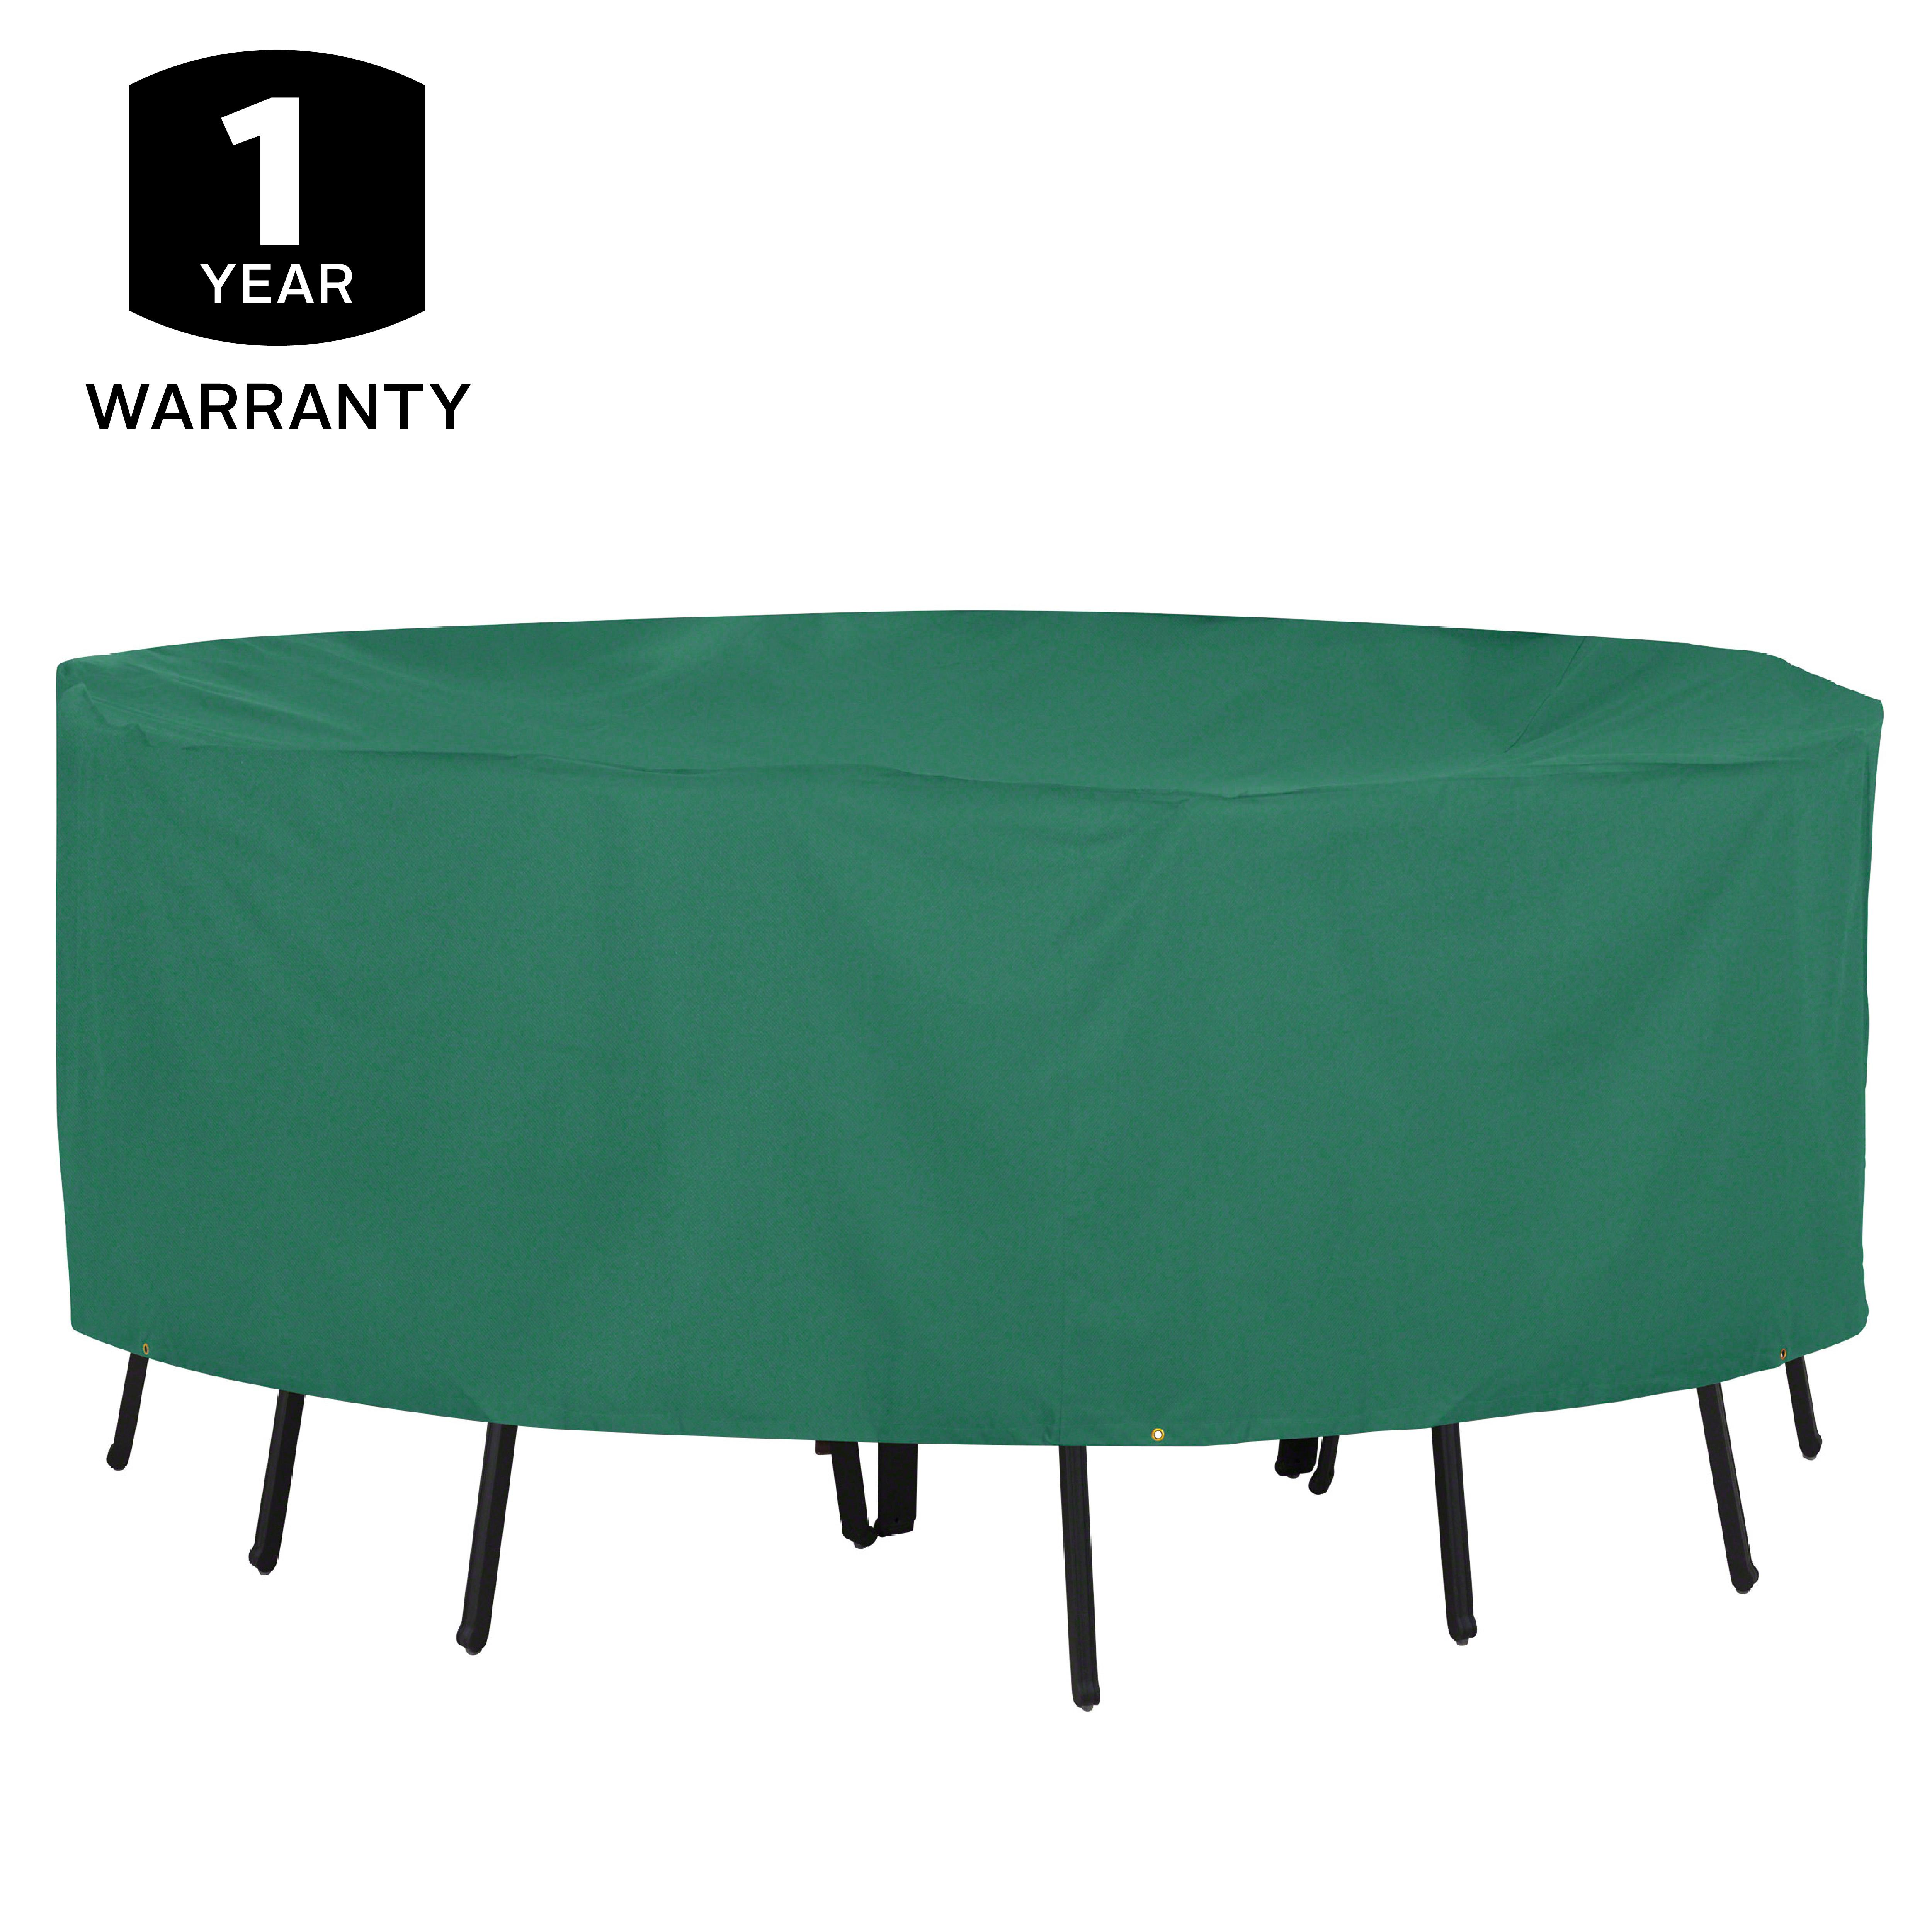 table long pebble set and for inch cover chair classic up rectangular to or veranda ca amazon accessories oval dp large patio